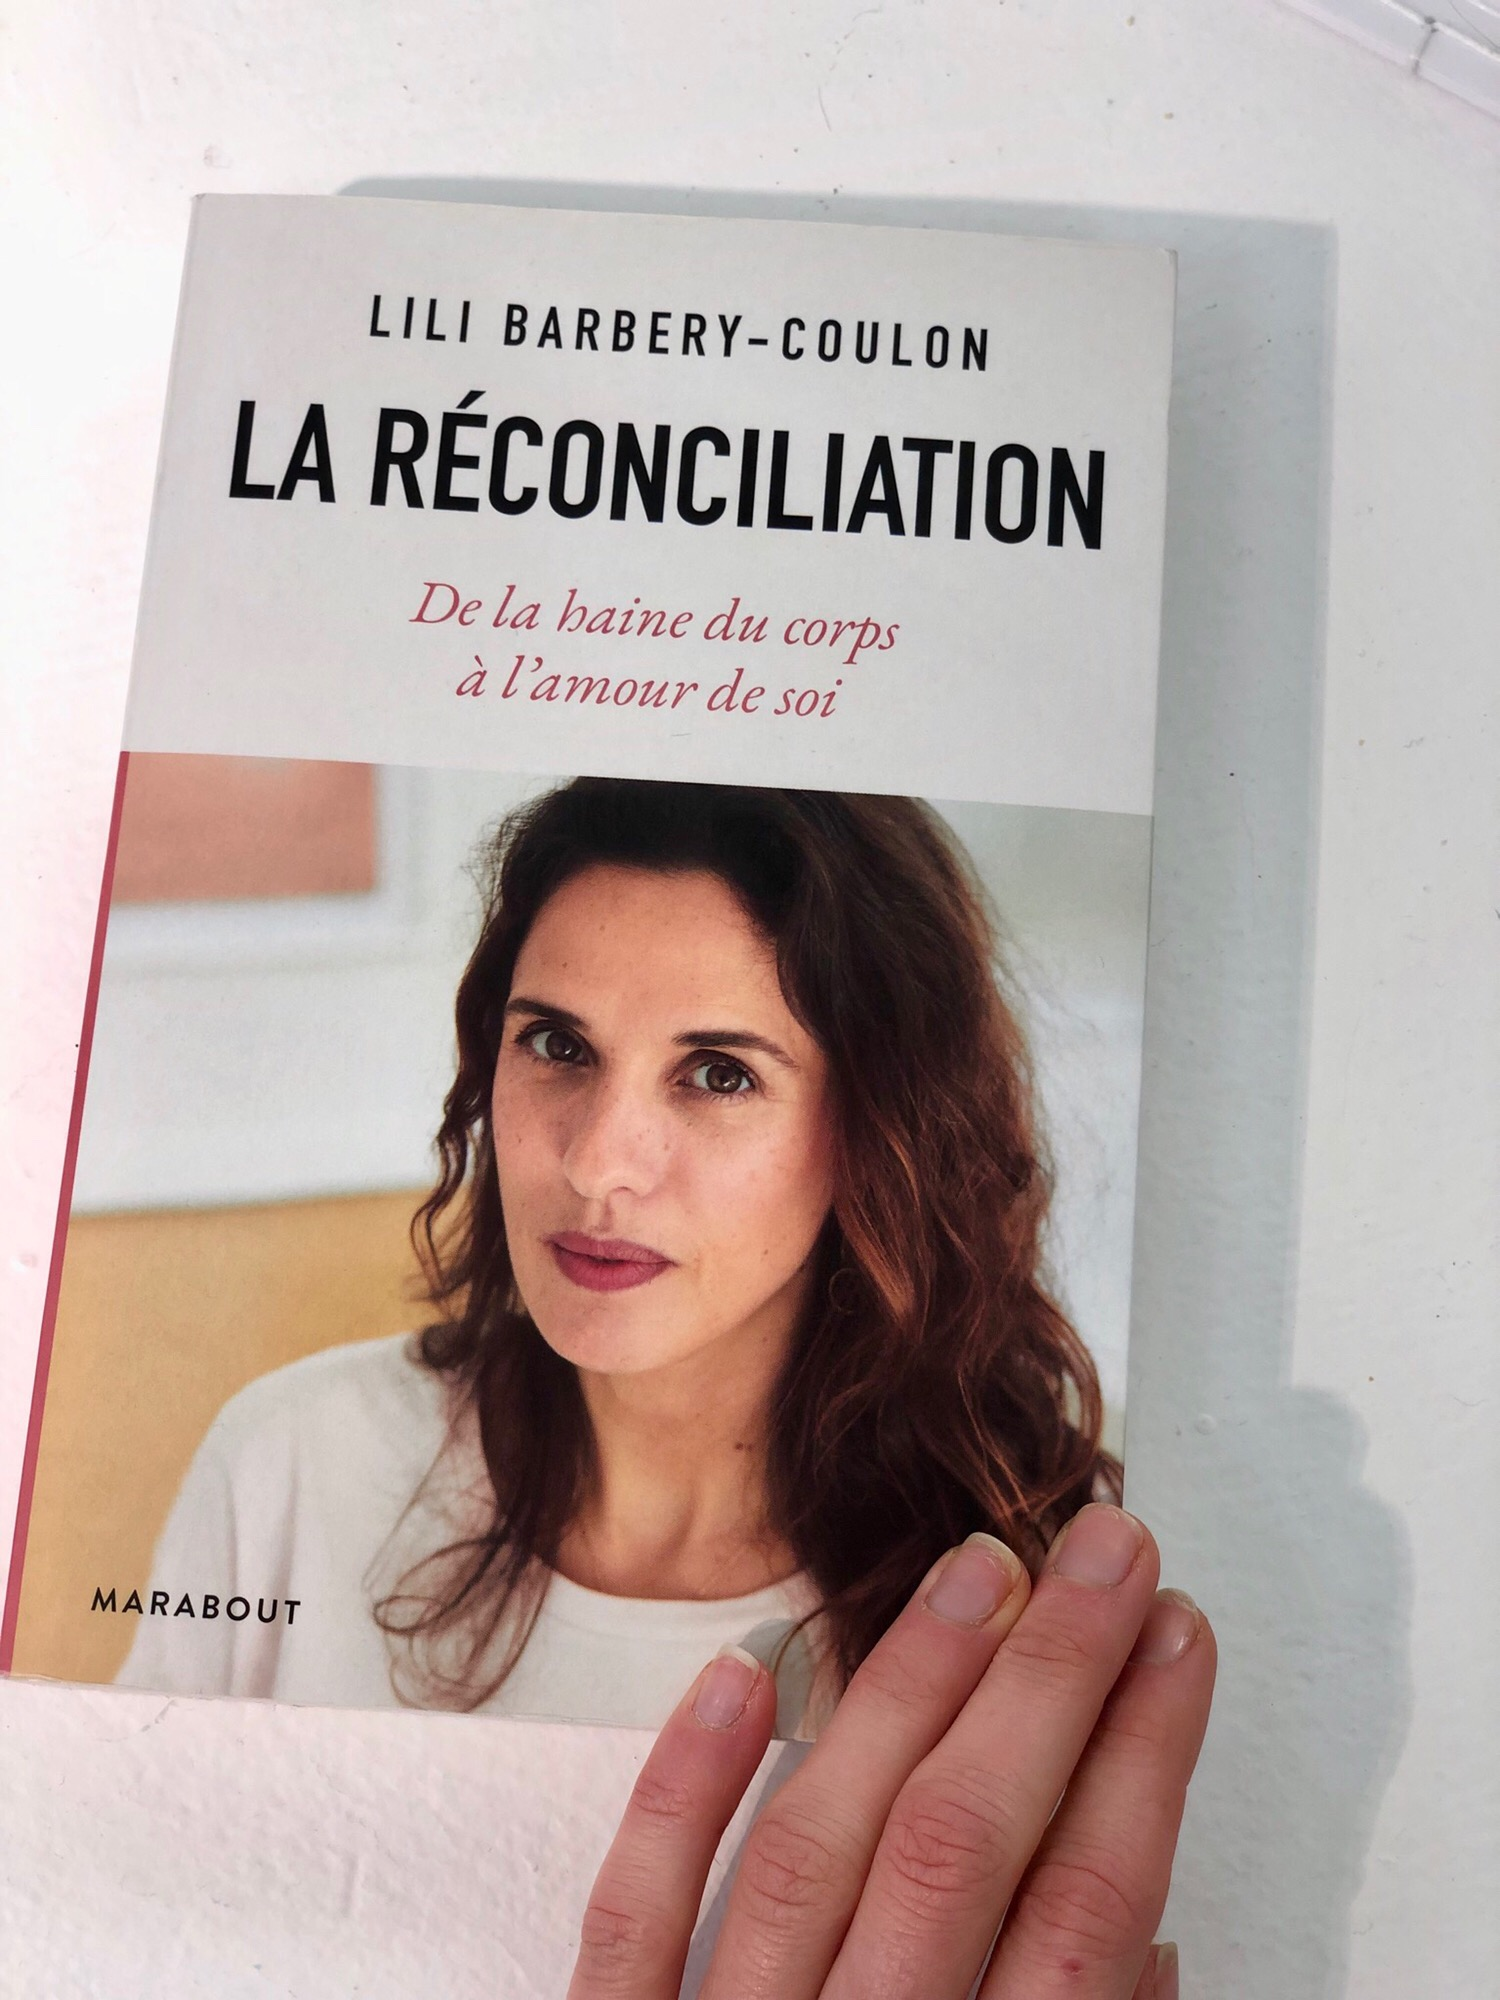 la réconciliation ; lili Barbery-Coulon ; kundalini ; astrologie ; astrologue